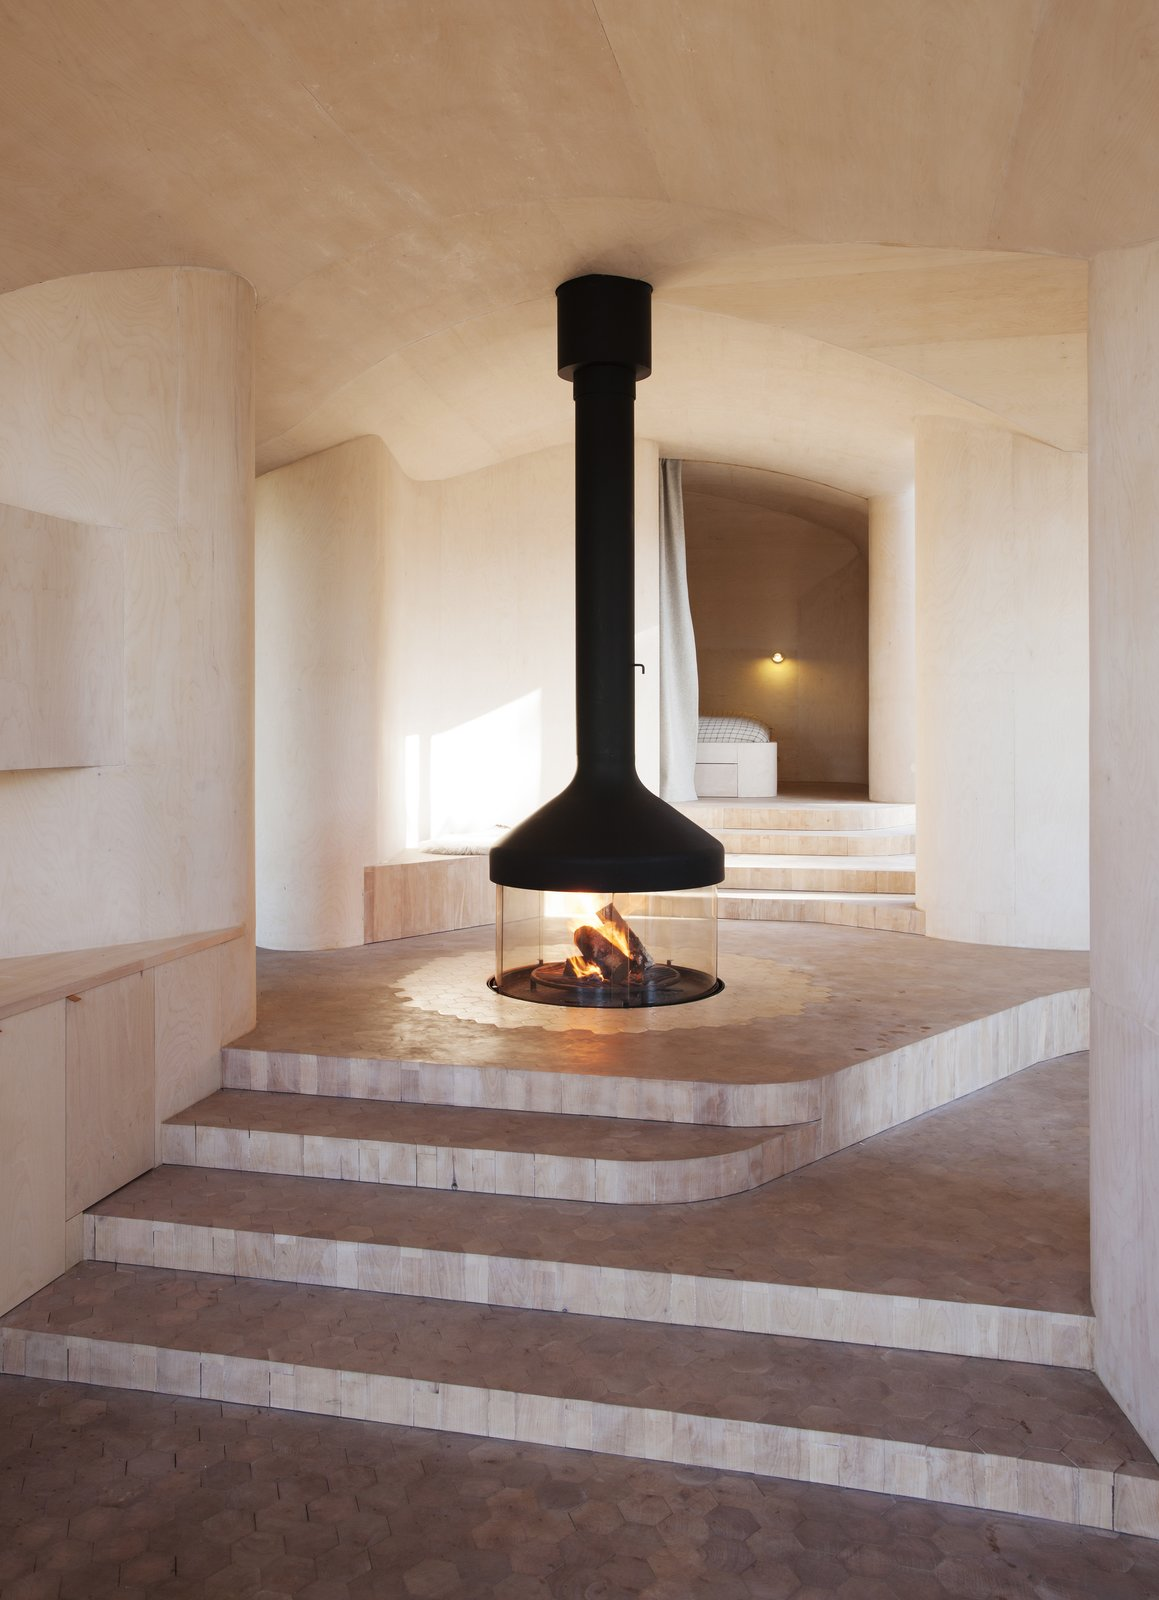 "The layout revolves around a central ""campfire"" that burns beneath a suspended mantel. Since it's located at the access level, the fireplace's flickering warmth can be enjoyed throughout the house. The surrounding floor is covered with hexagon tiles cut from marble, which transition into tiles made of birch log in the rest of the house. Tagged: Living Room, Hanging Fireplace, and Marble Floor.  Modern Winter Retreats by Aileen Kwun from Cabin Norderhov"